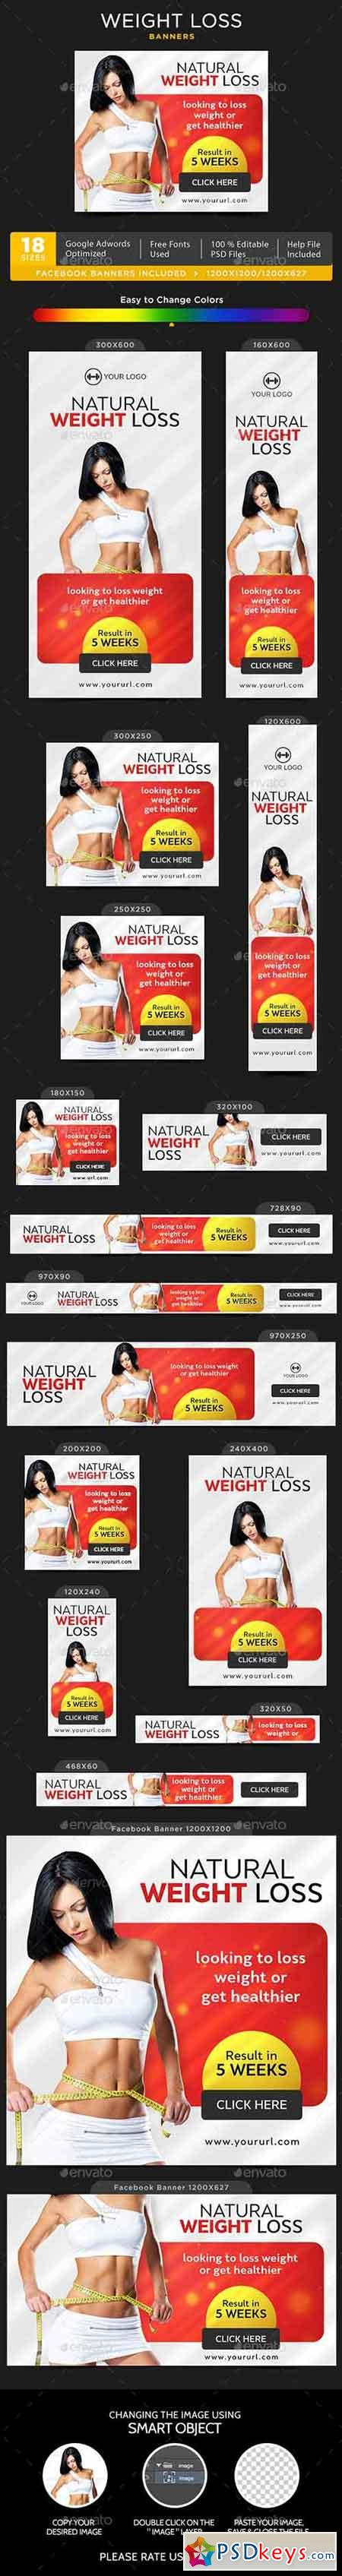 Fitness Banners Bundle - 10 Sets - 180 Banners 17799479